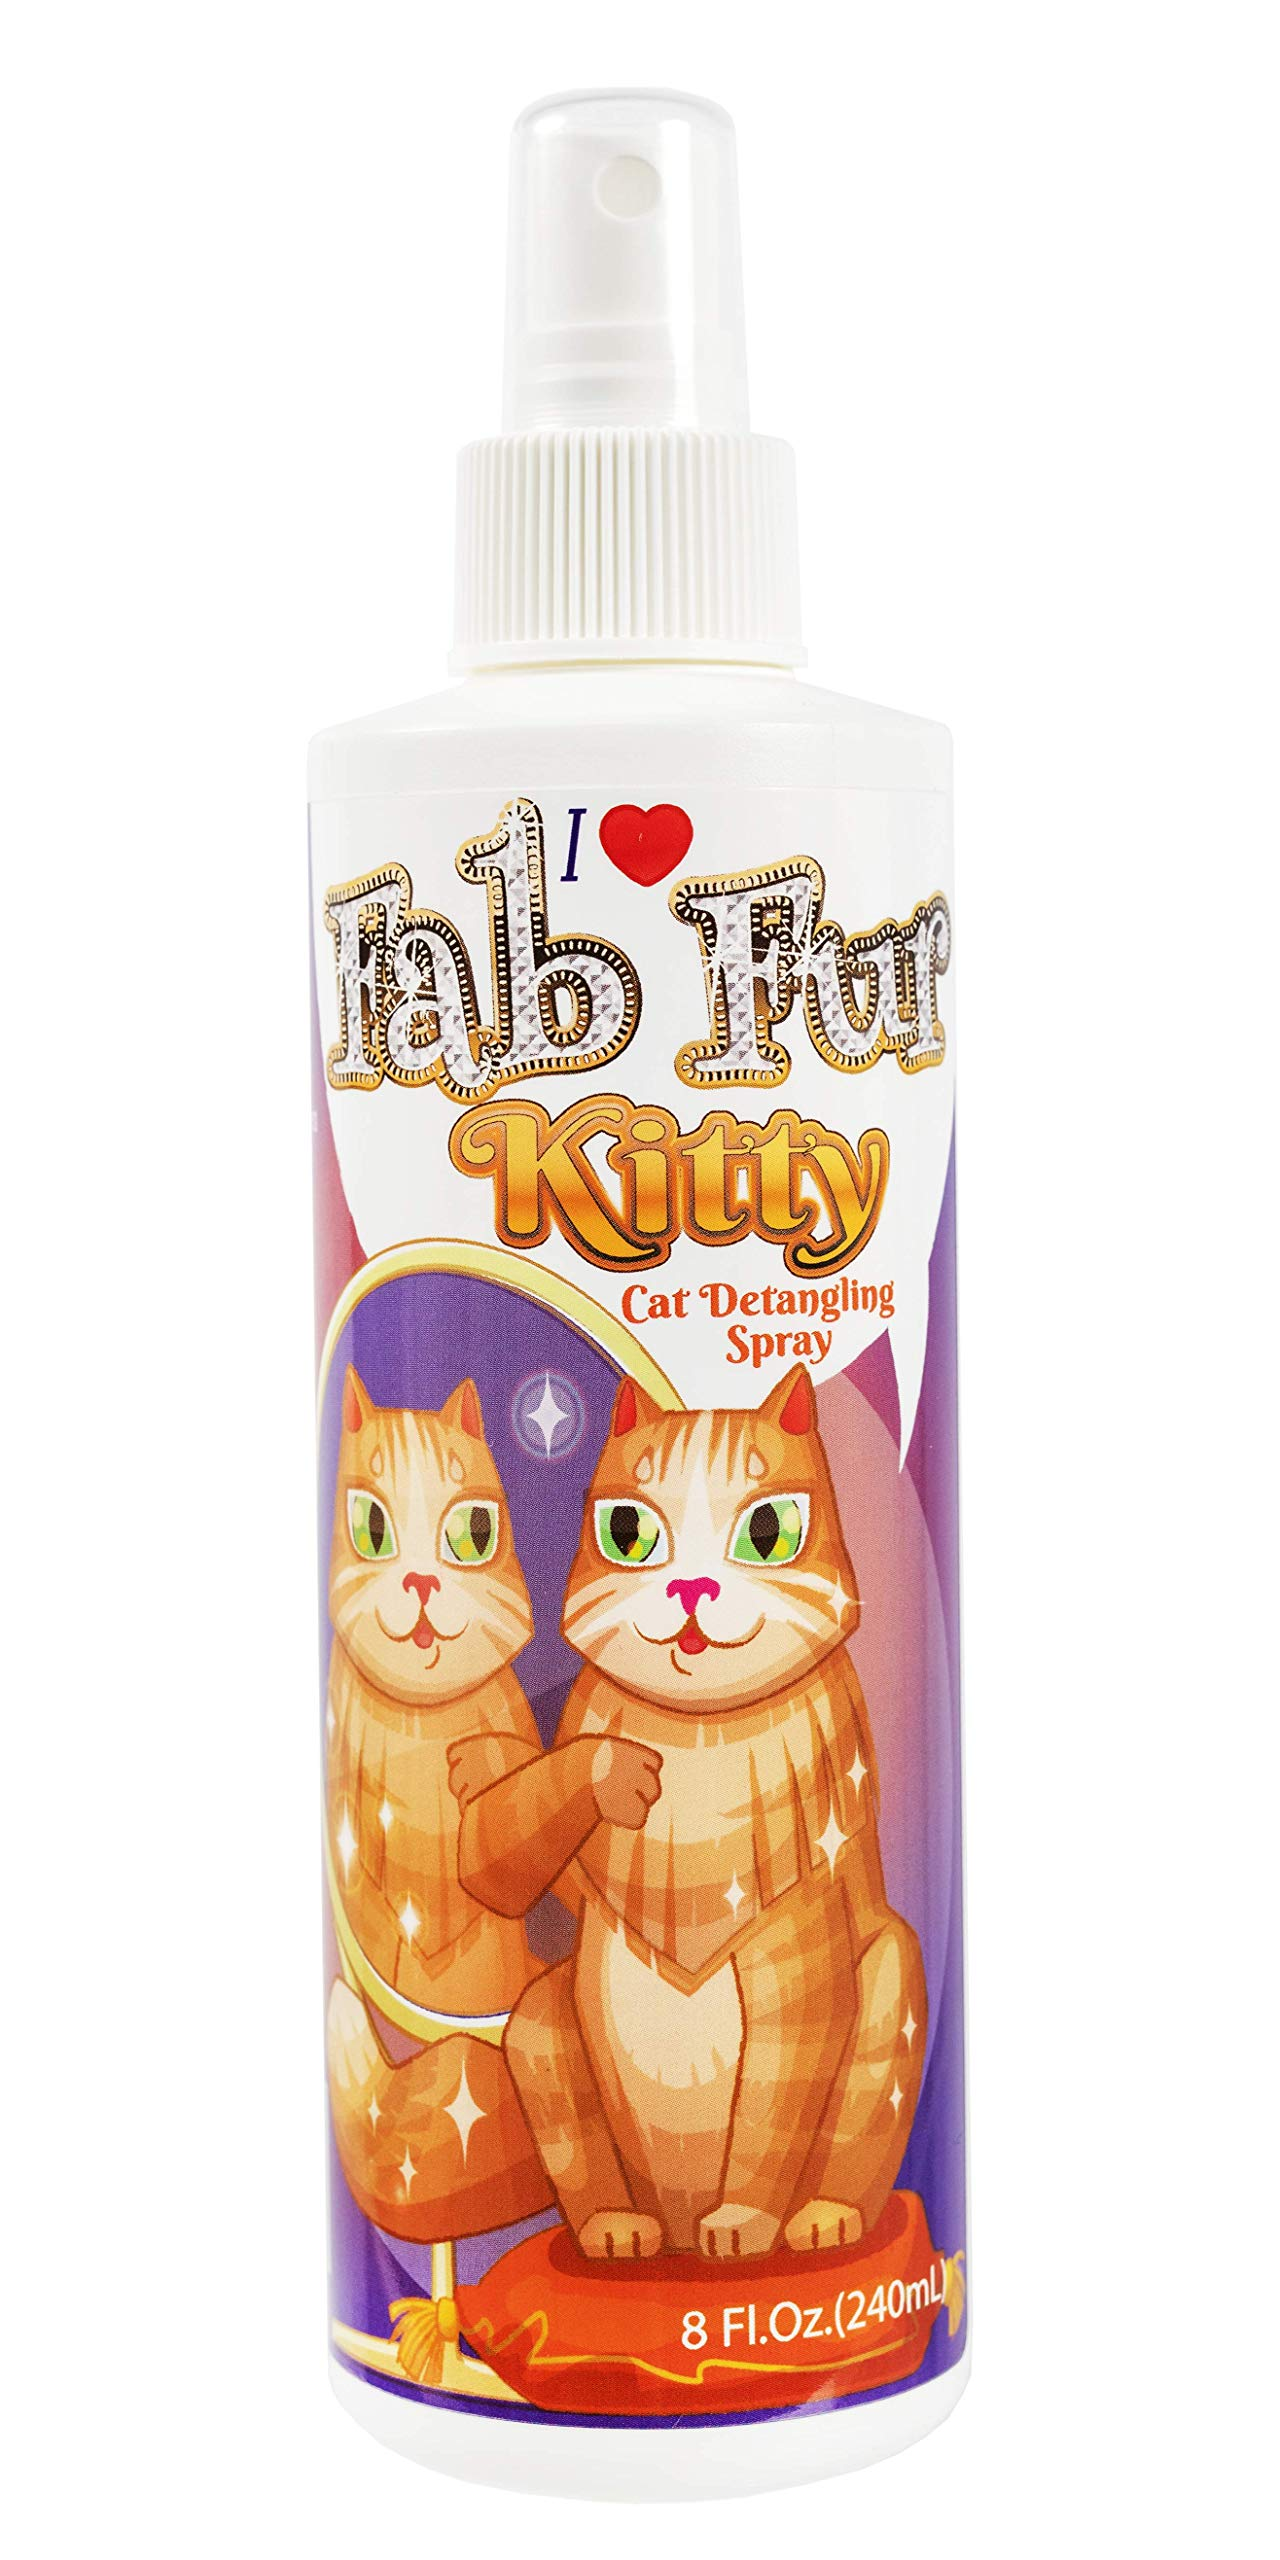 Pet MasterMind Fab Fur Kitty Detangling Conditioning Spray 8 Oz - Best Cat Spray for Grooming and Dematting. Premium Natural Ingredients - Unscented as Kitty Prefers! by Pet MasterMind